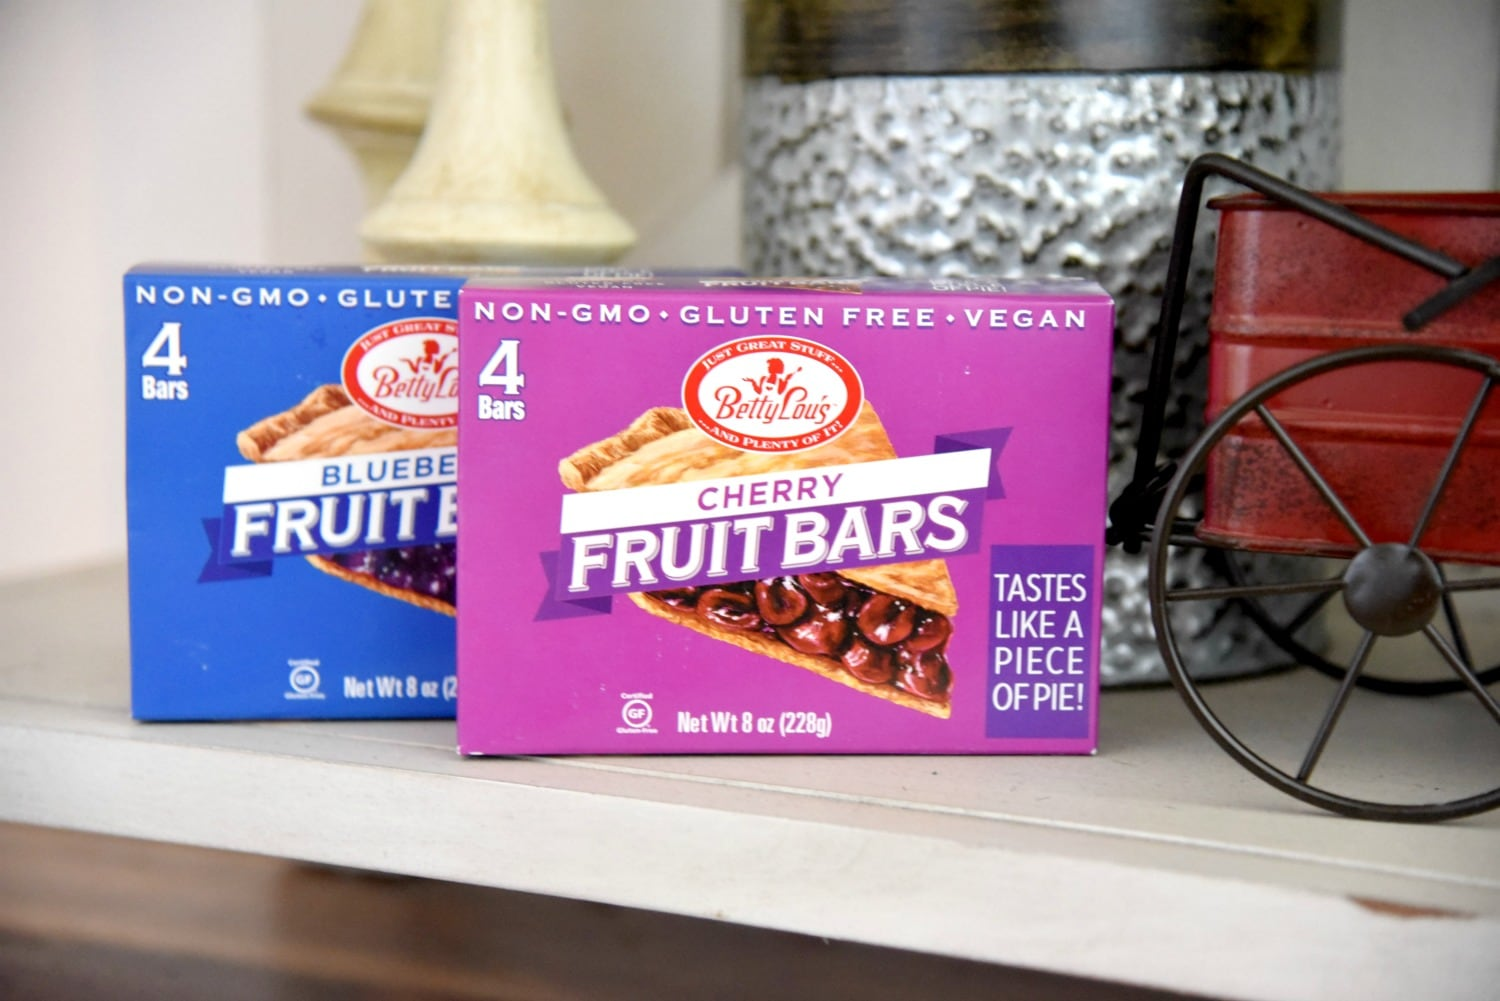 Betty Lous fruit bars